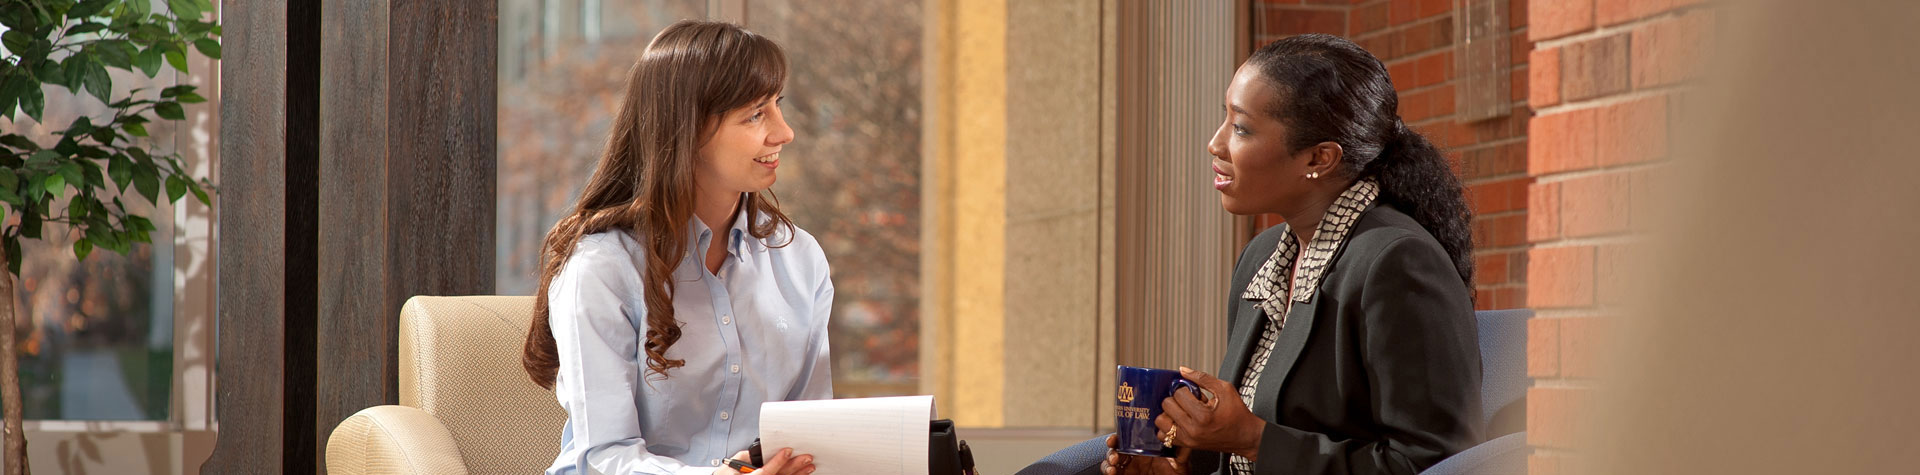 Photograph: Current law student visiting with a Washburn Law graduate.